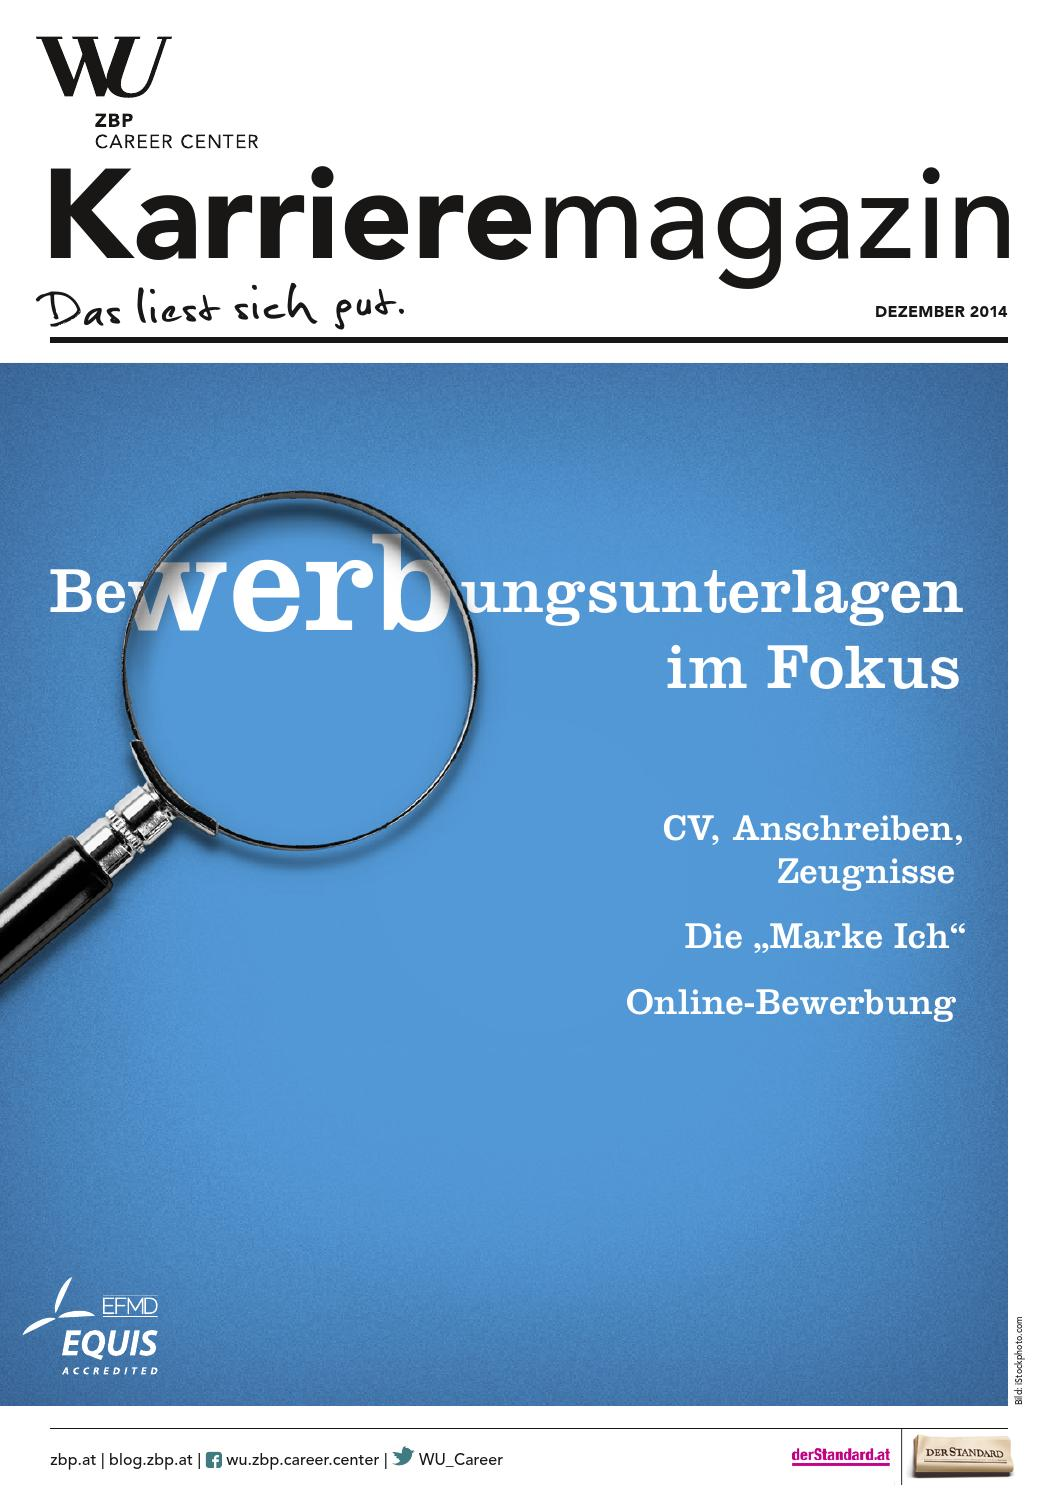 Karrieremagazin 4/2014 by WU ZBP Career Center - issuu